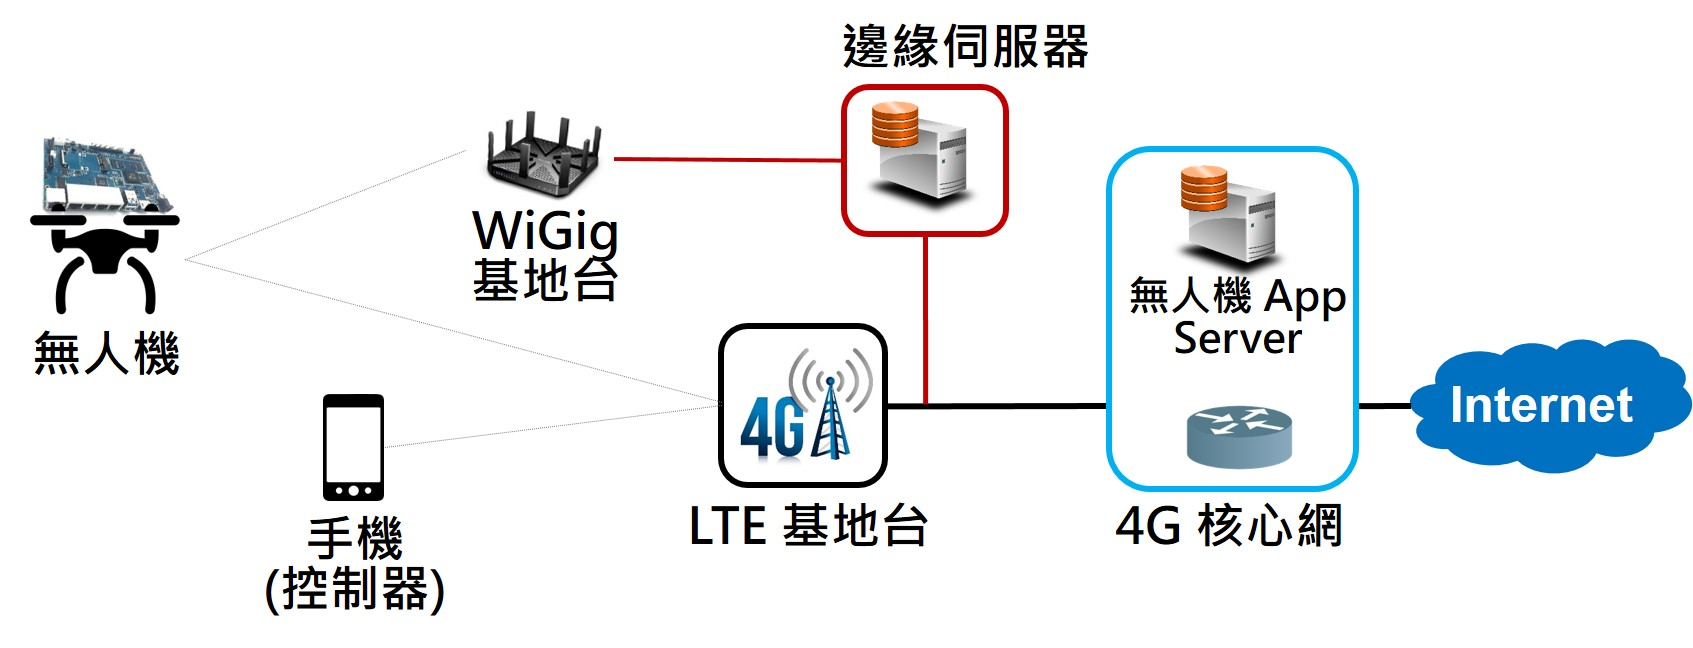 Network-intensive UAV with long-range control over LTE networksultrahigh-speed WiGig communication